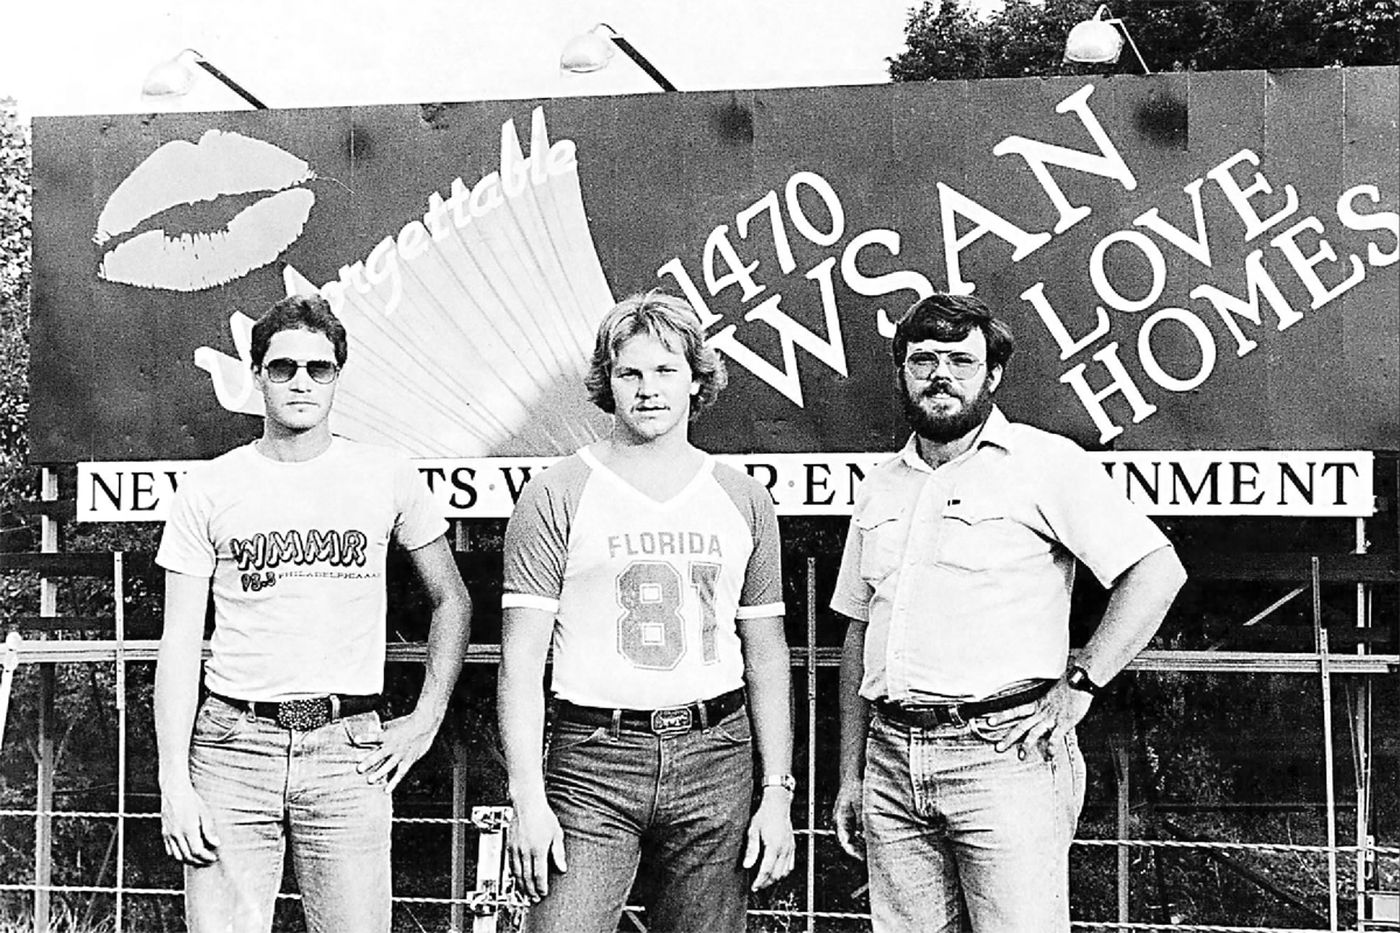 In 1982, three Allentown guys sat on a billboard for 261 days to win a house